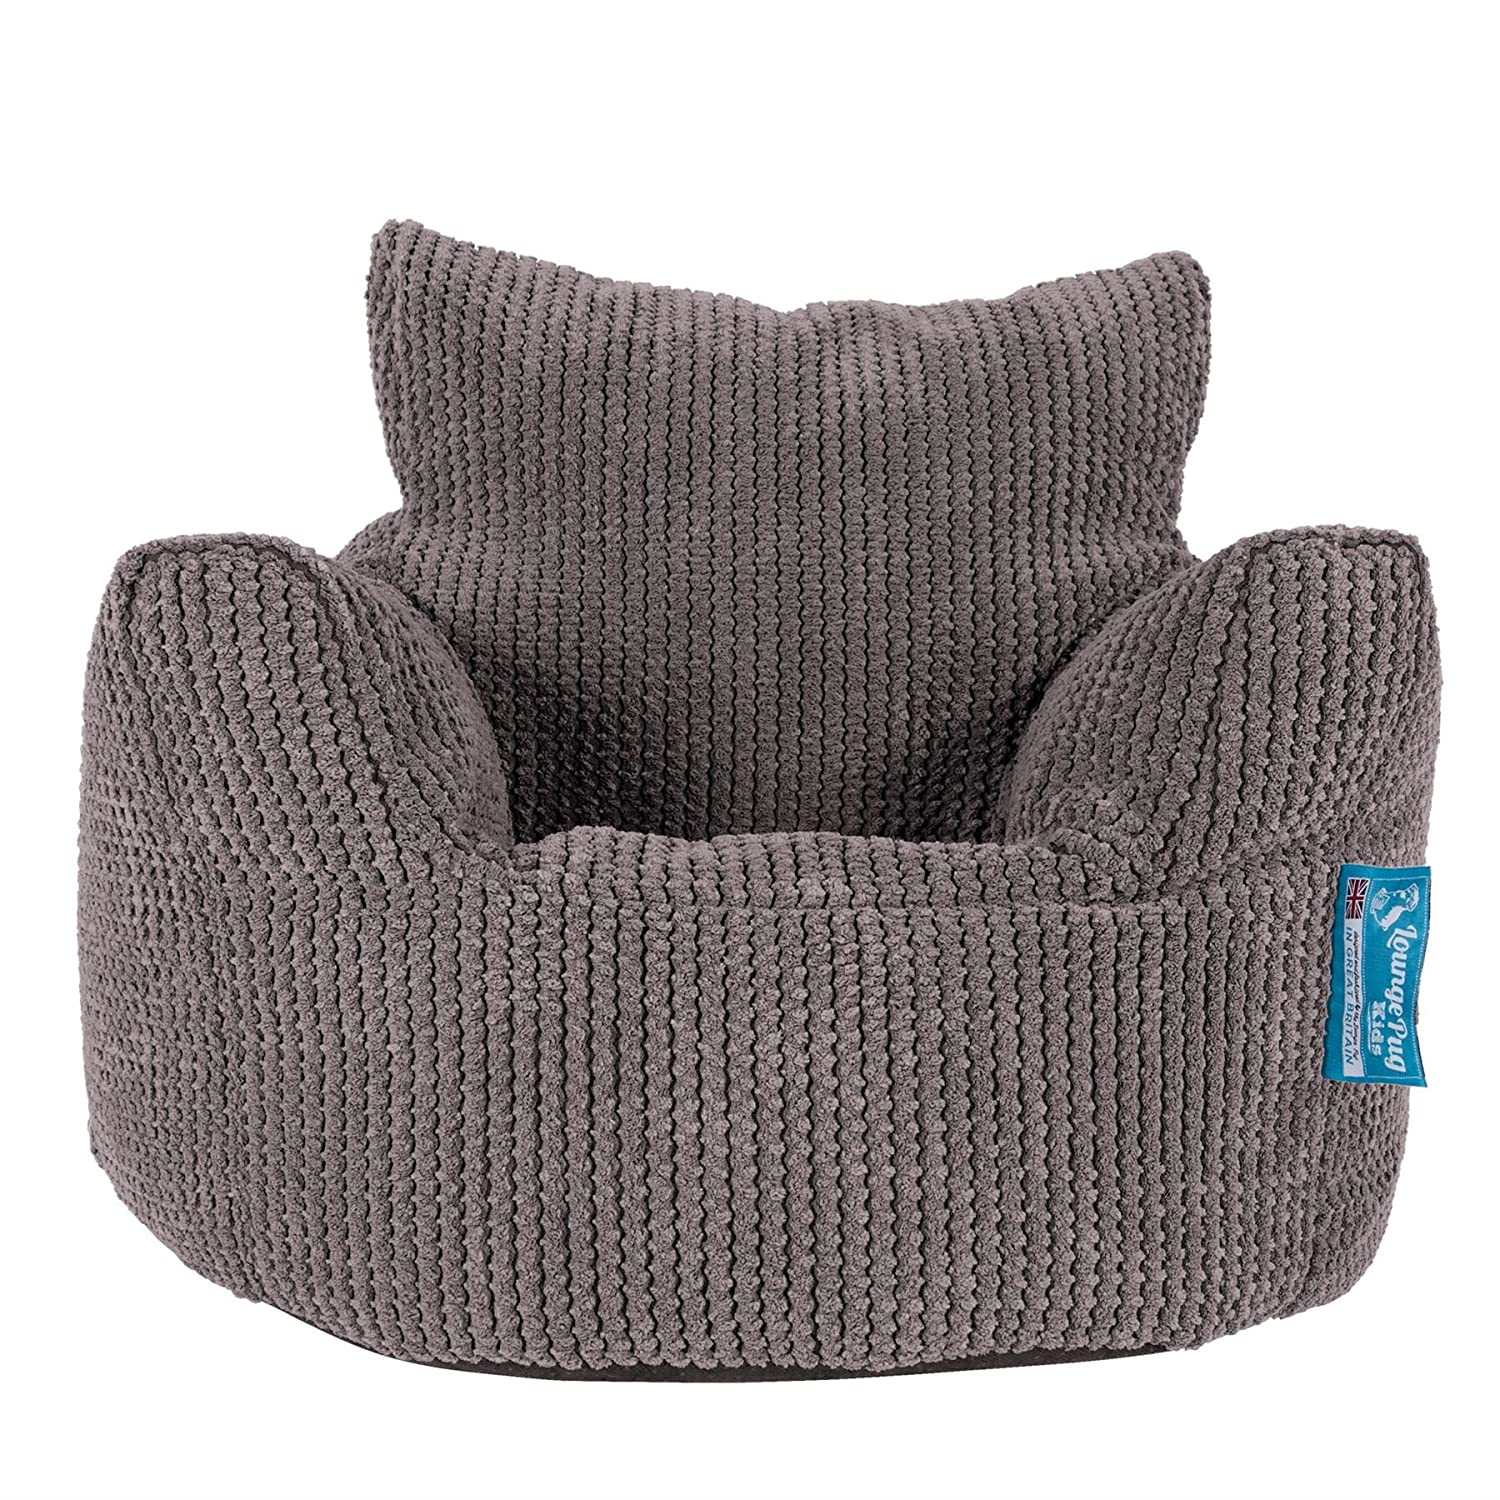 Lounge Pug - Pom Pom - CHILDRENS Armchair - Kids Bean Bags UK - CHARCOAL GREY Lounge Pug Bean Bags